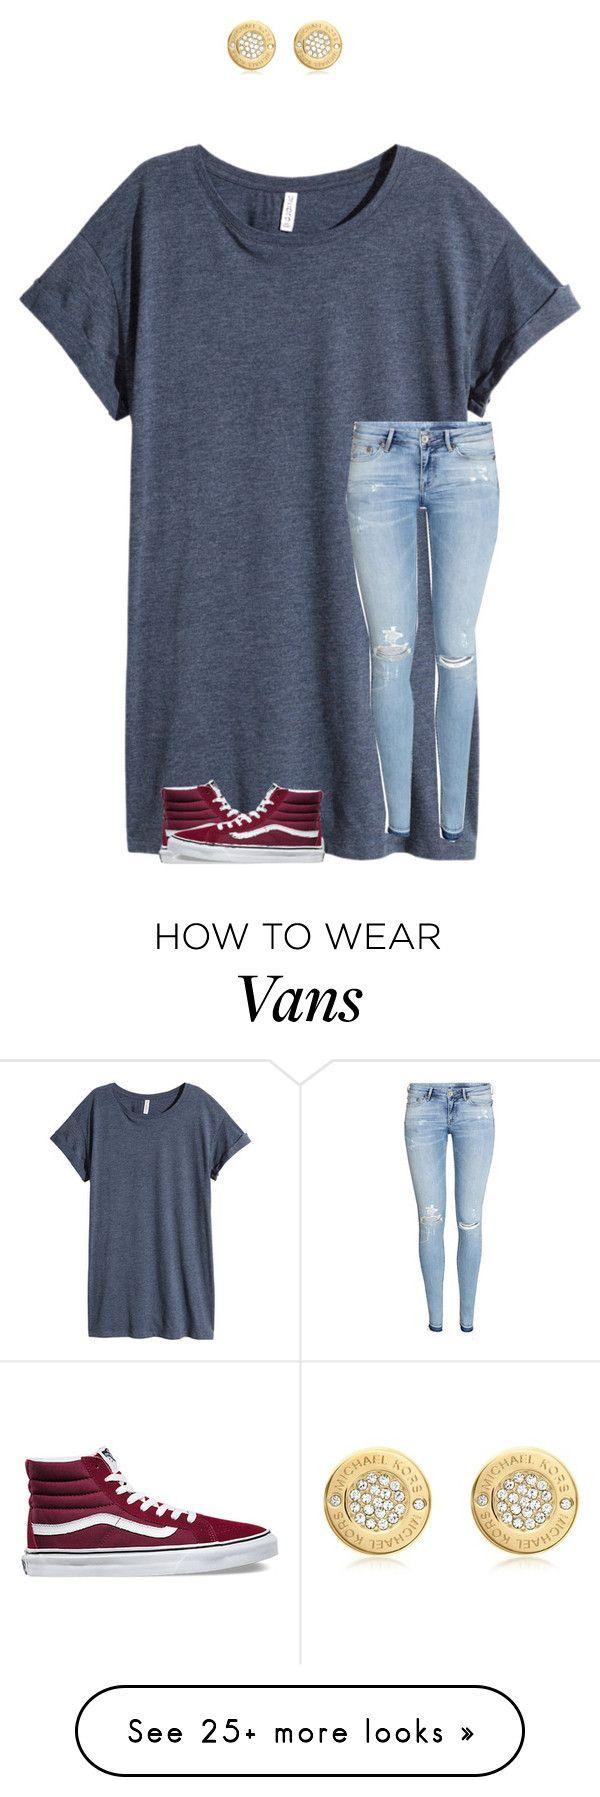 """While you catch these feelings I'm going to sip on this drink"" by awesome2much on Polyvore featuring H&M, Vans and Michael Kors"